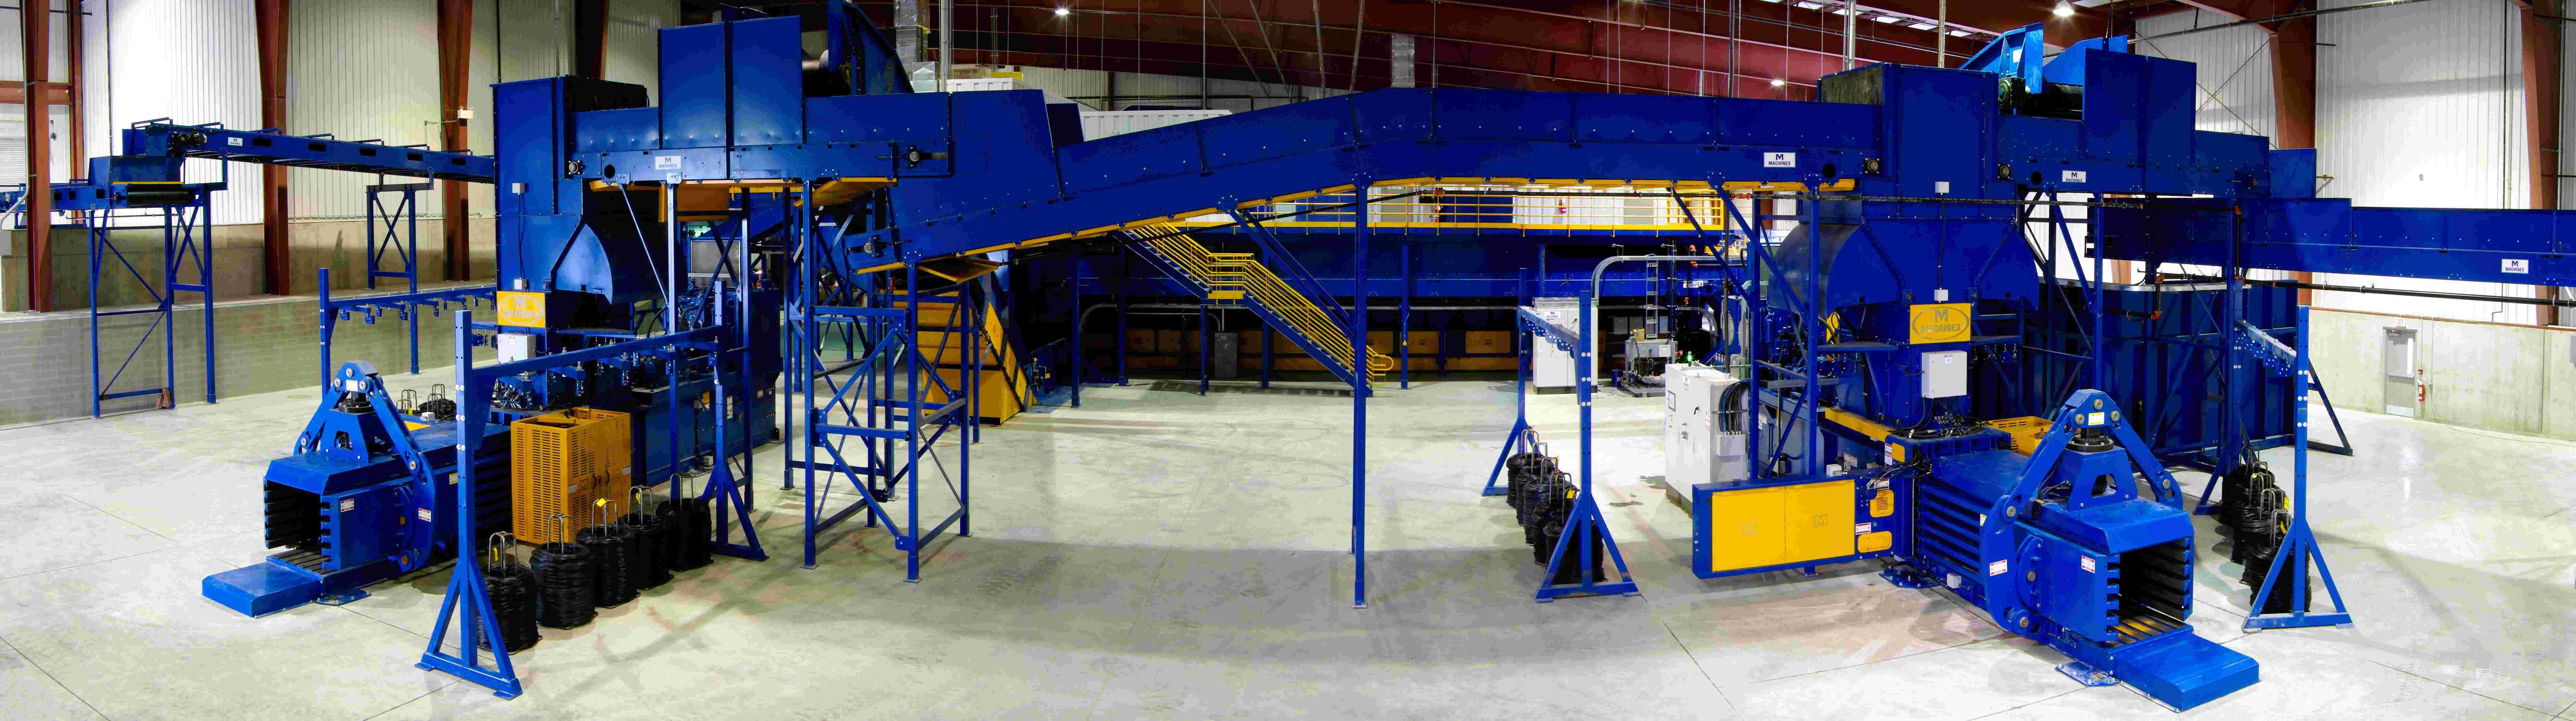 horizontal baler shear web